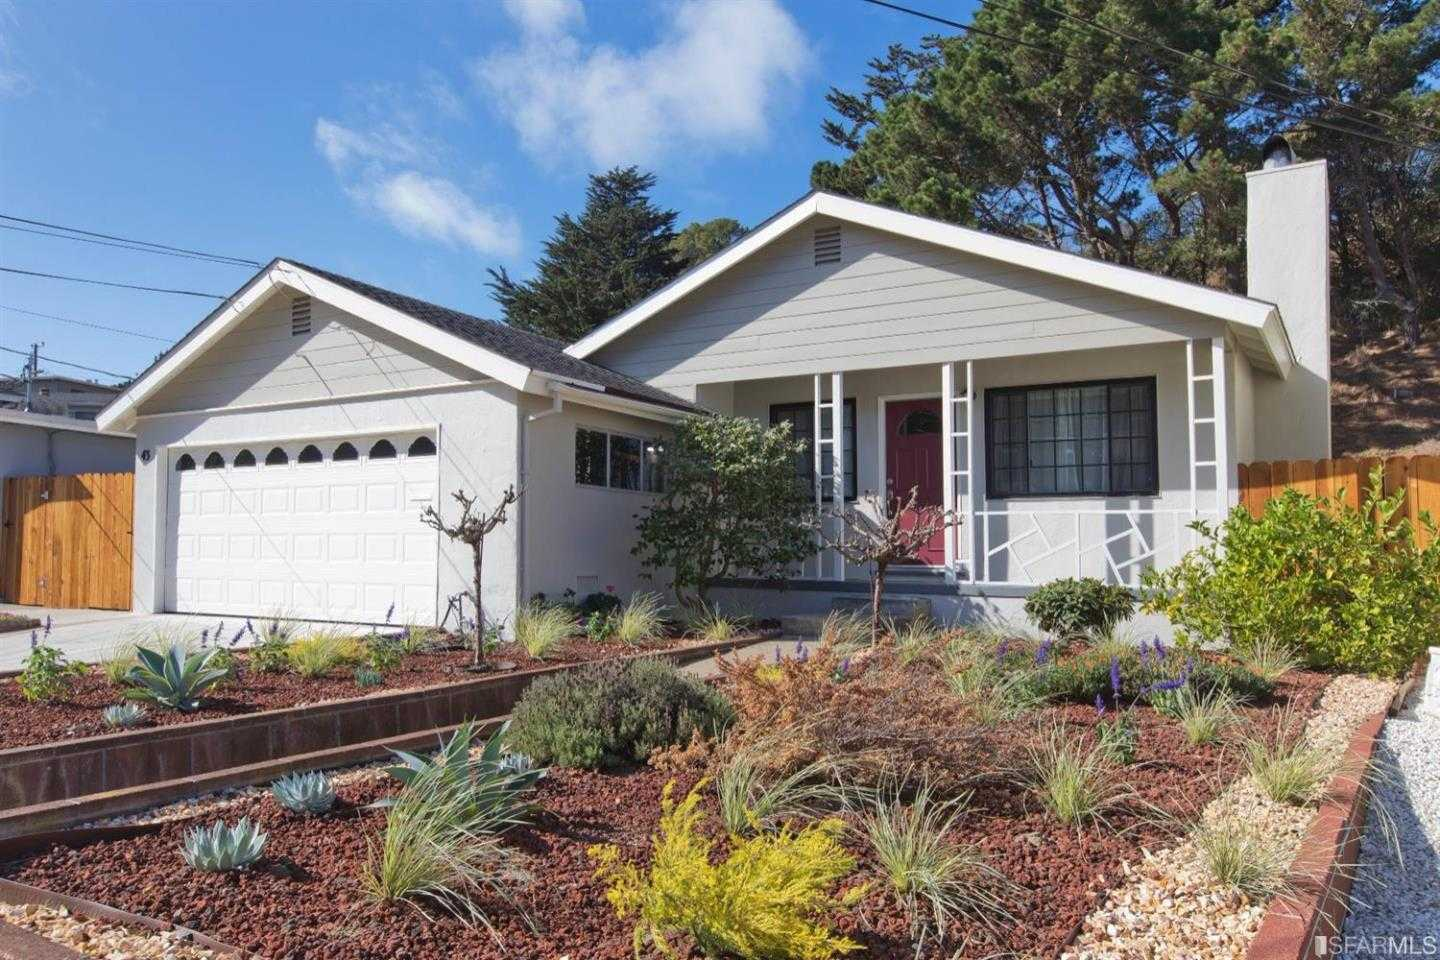 $1,100,000 - 3Br/2Ba -  for Sale in South San Francisco